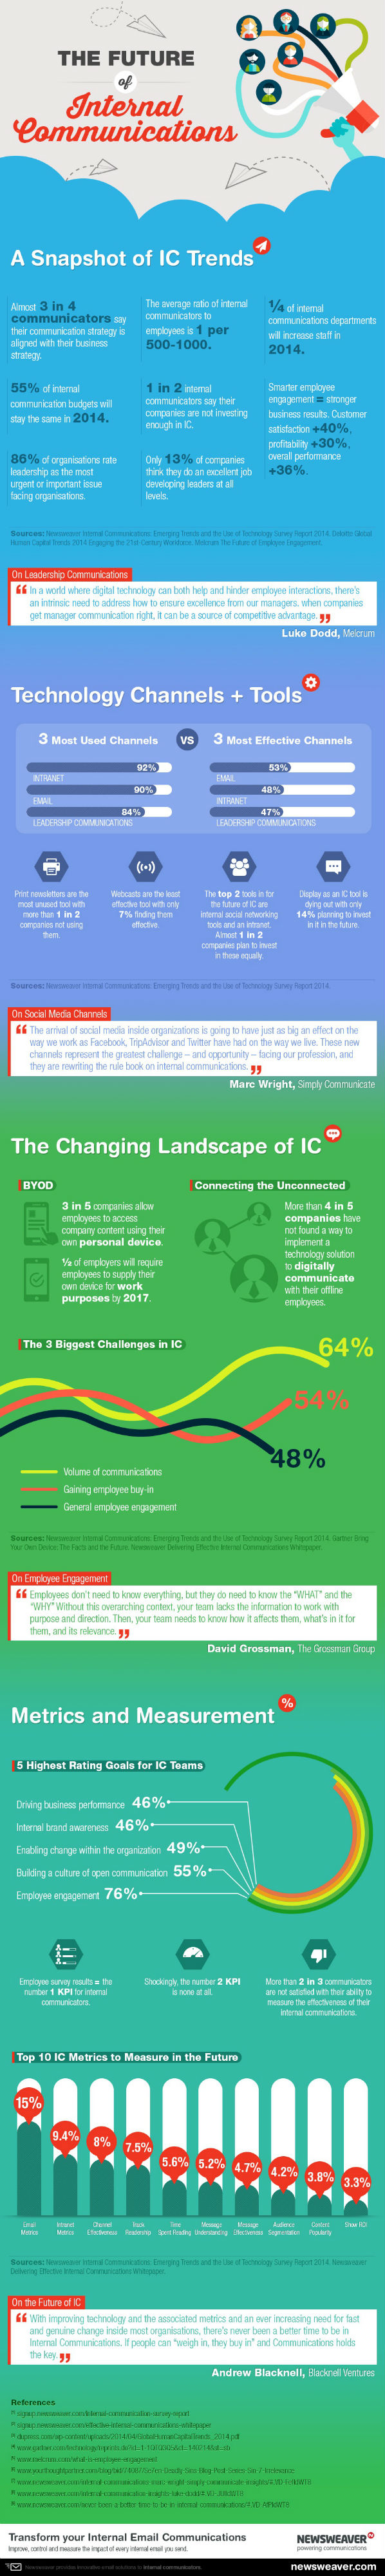 The Future of Internal Communications [Infographic]